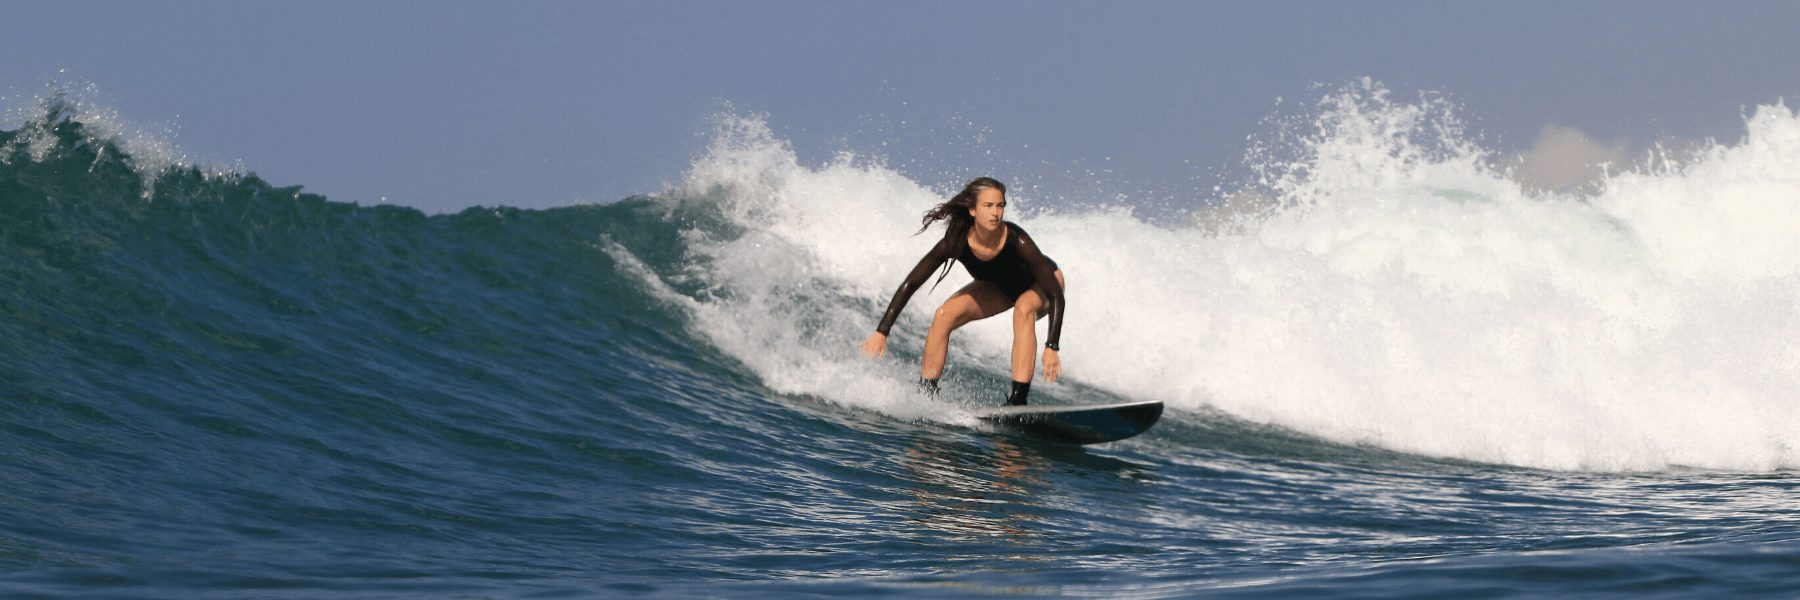 The Best D&B Swimsuit Styles for Surfing